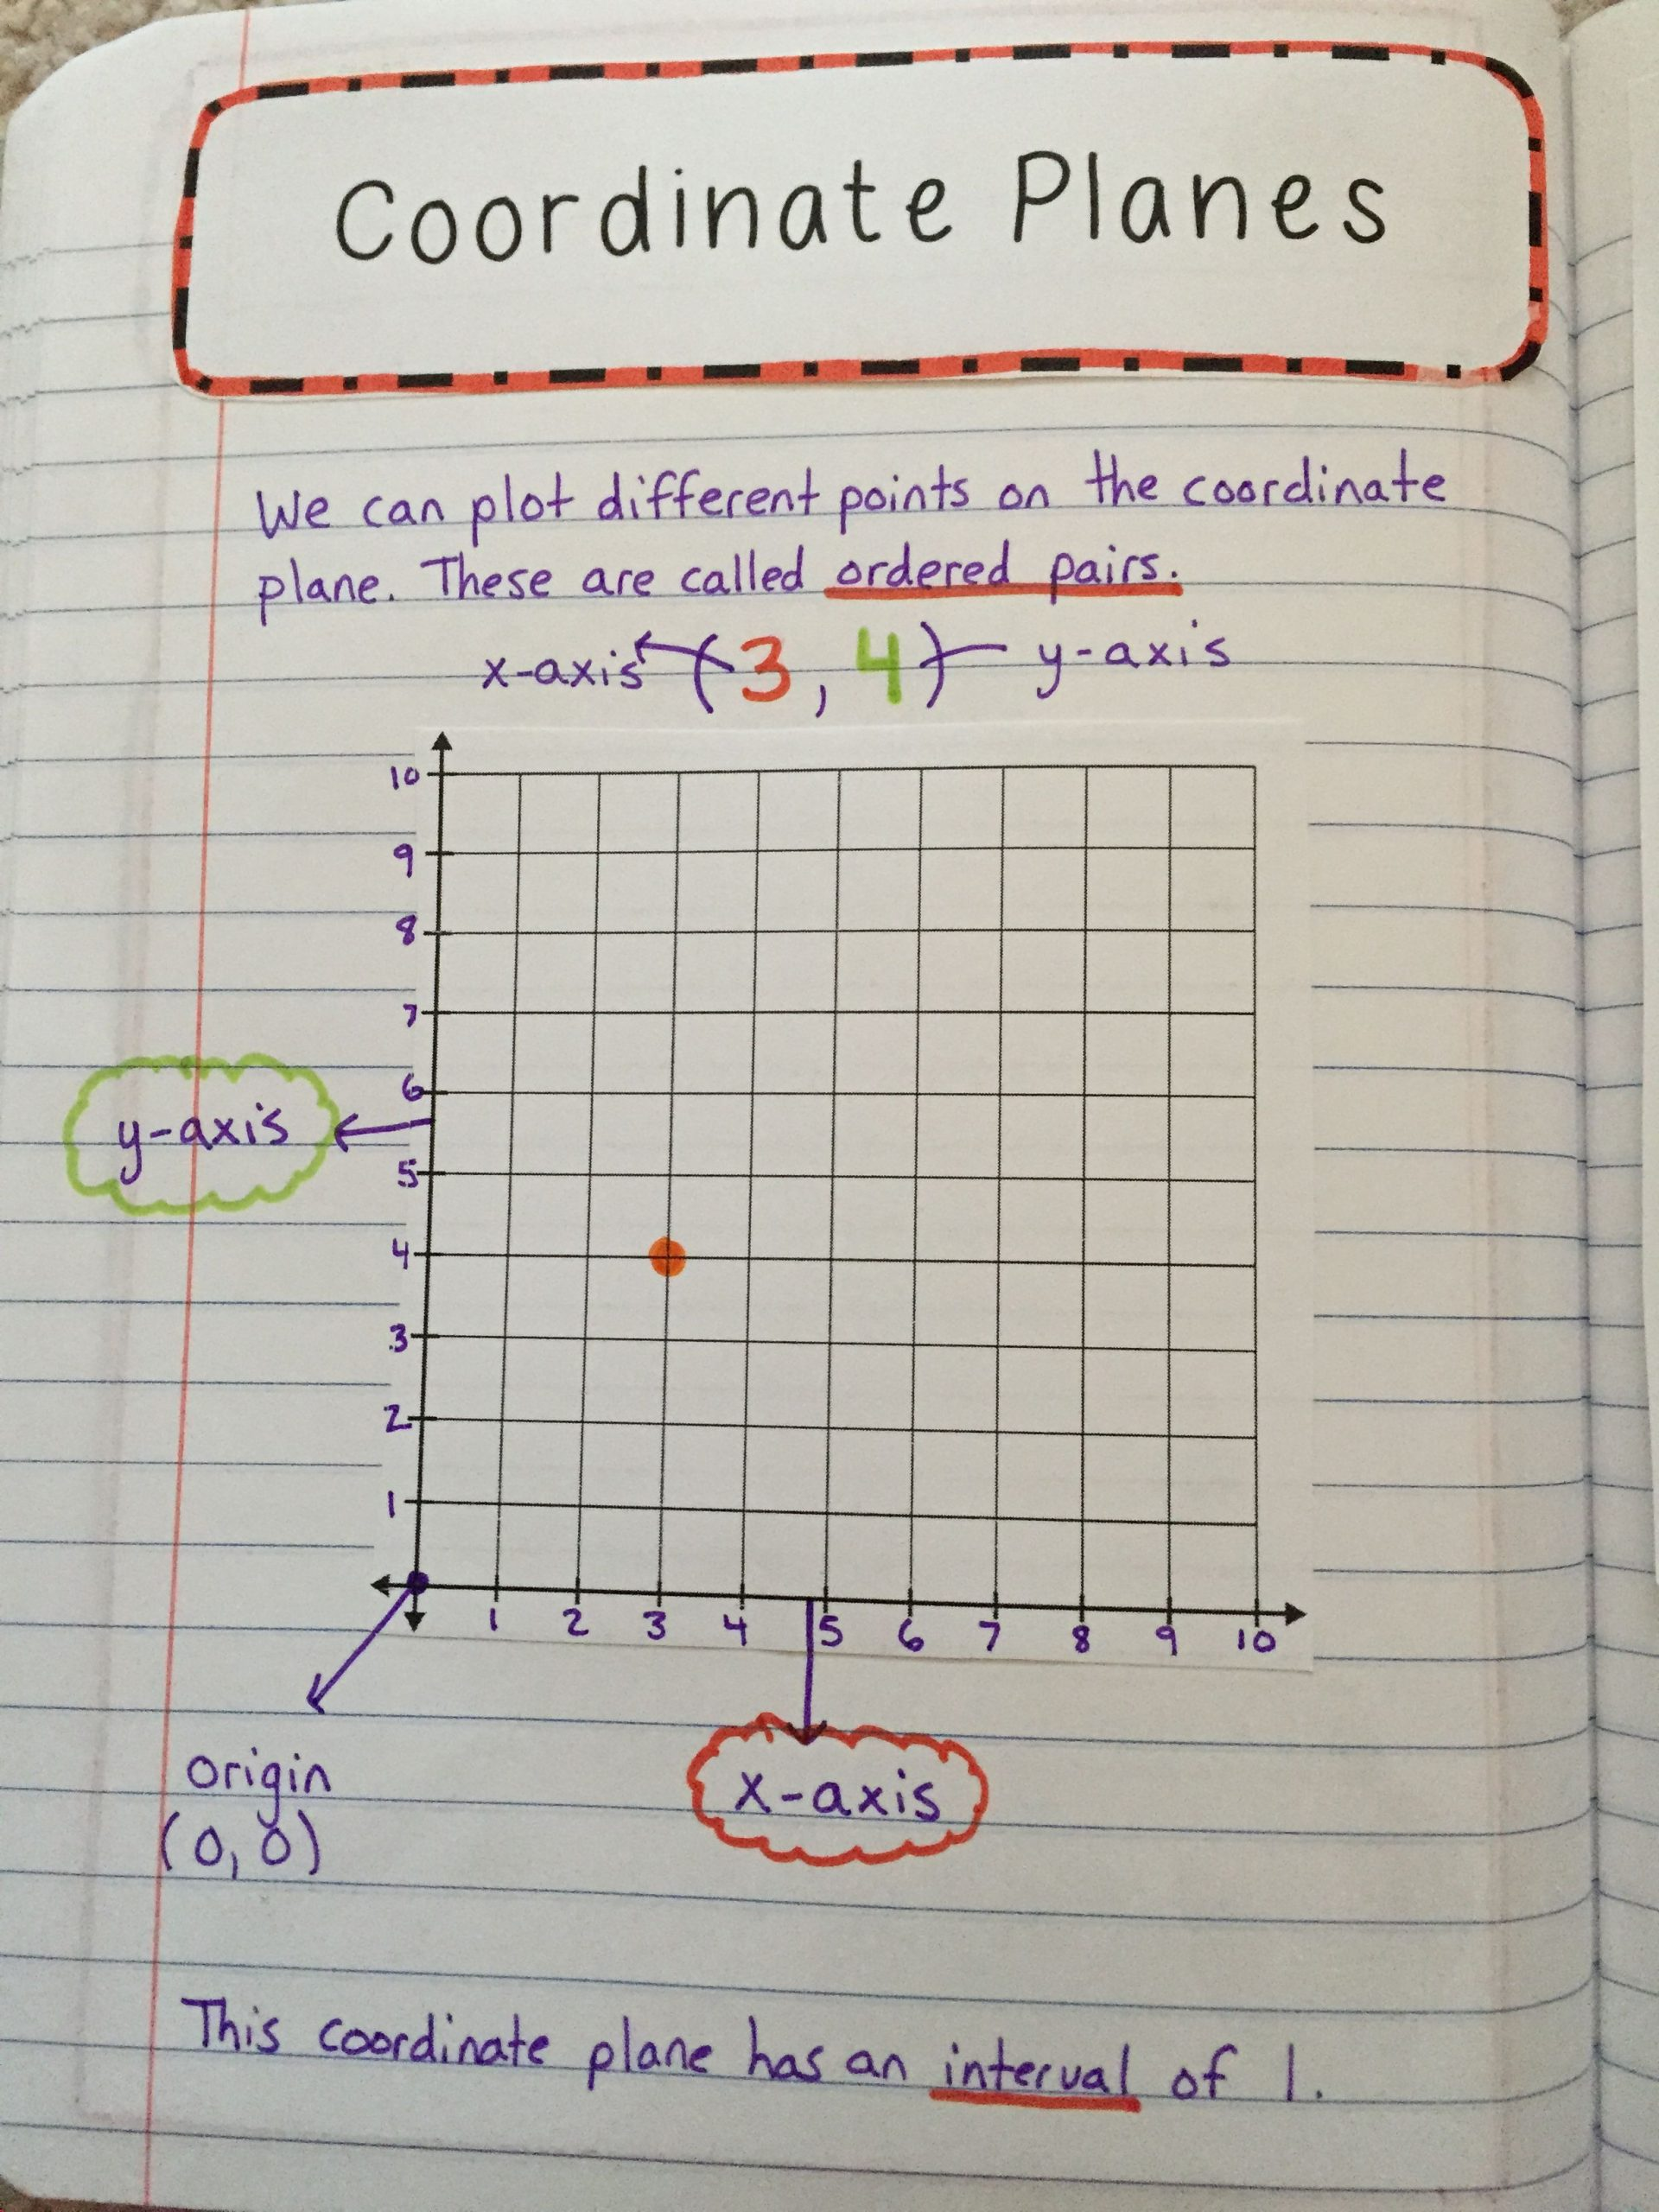 Coordinate Grid Worksheets 5th Grade Pin by Cara Beth Mcleod On 5th Grade Math In 2020